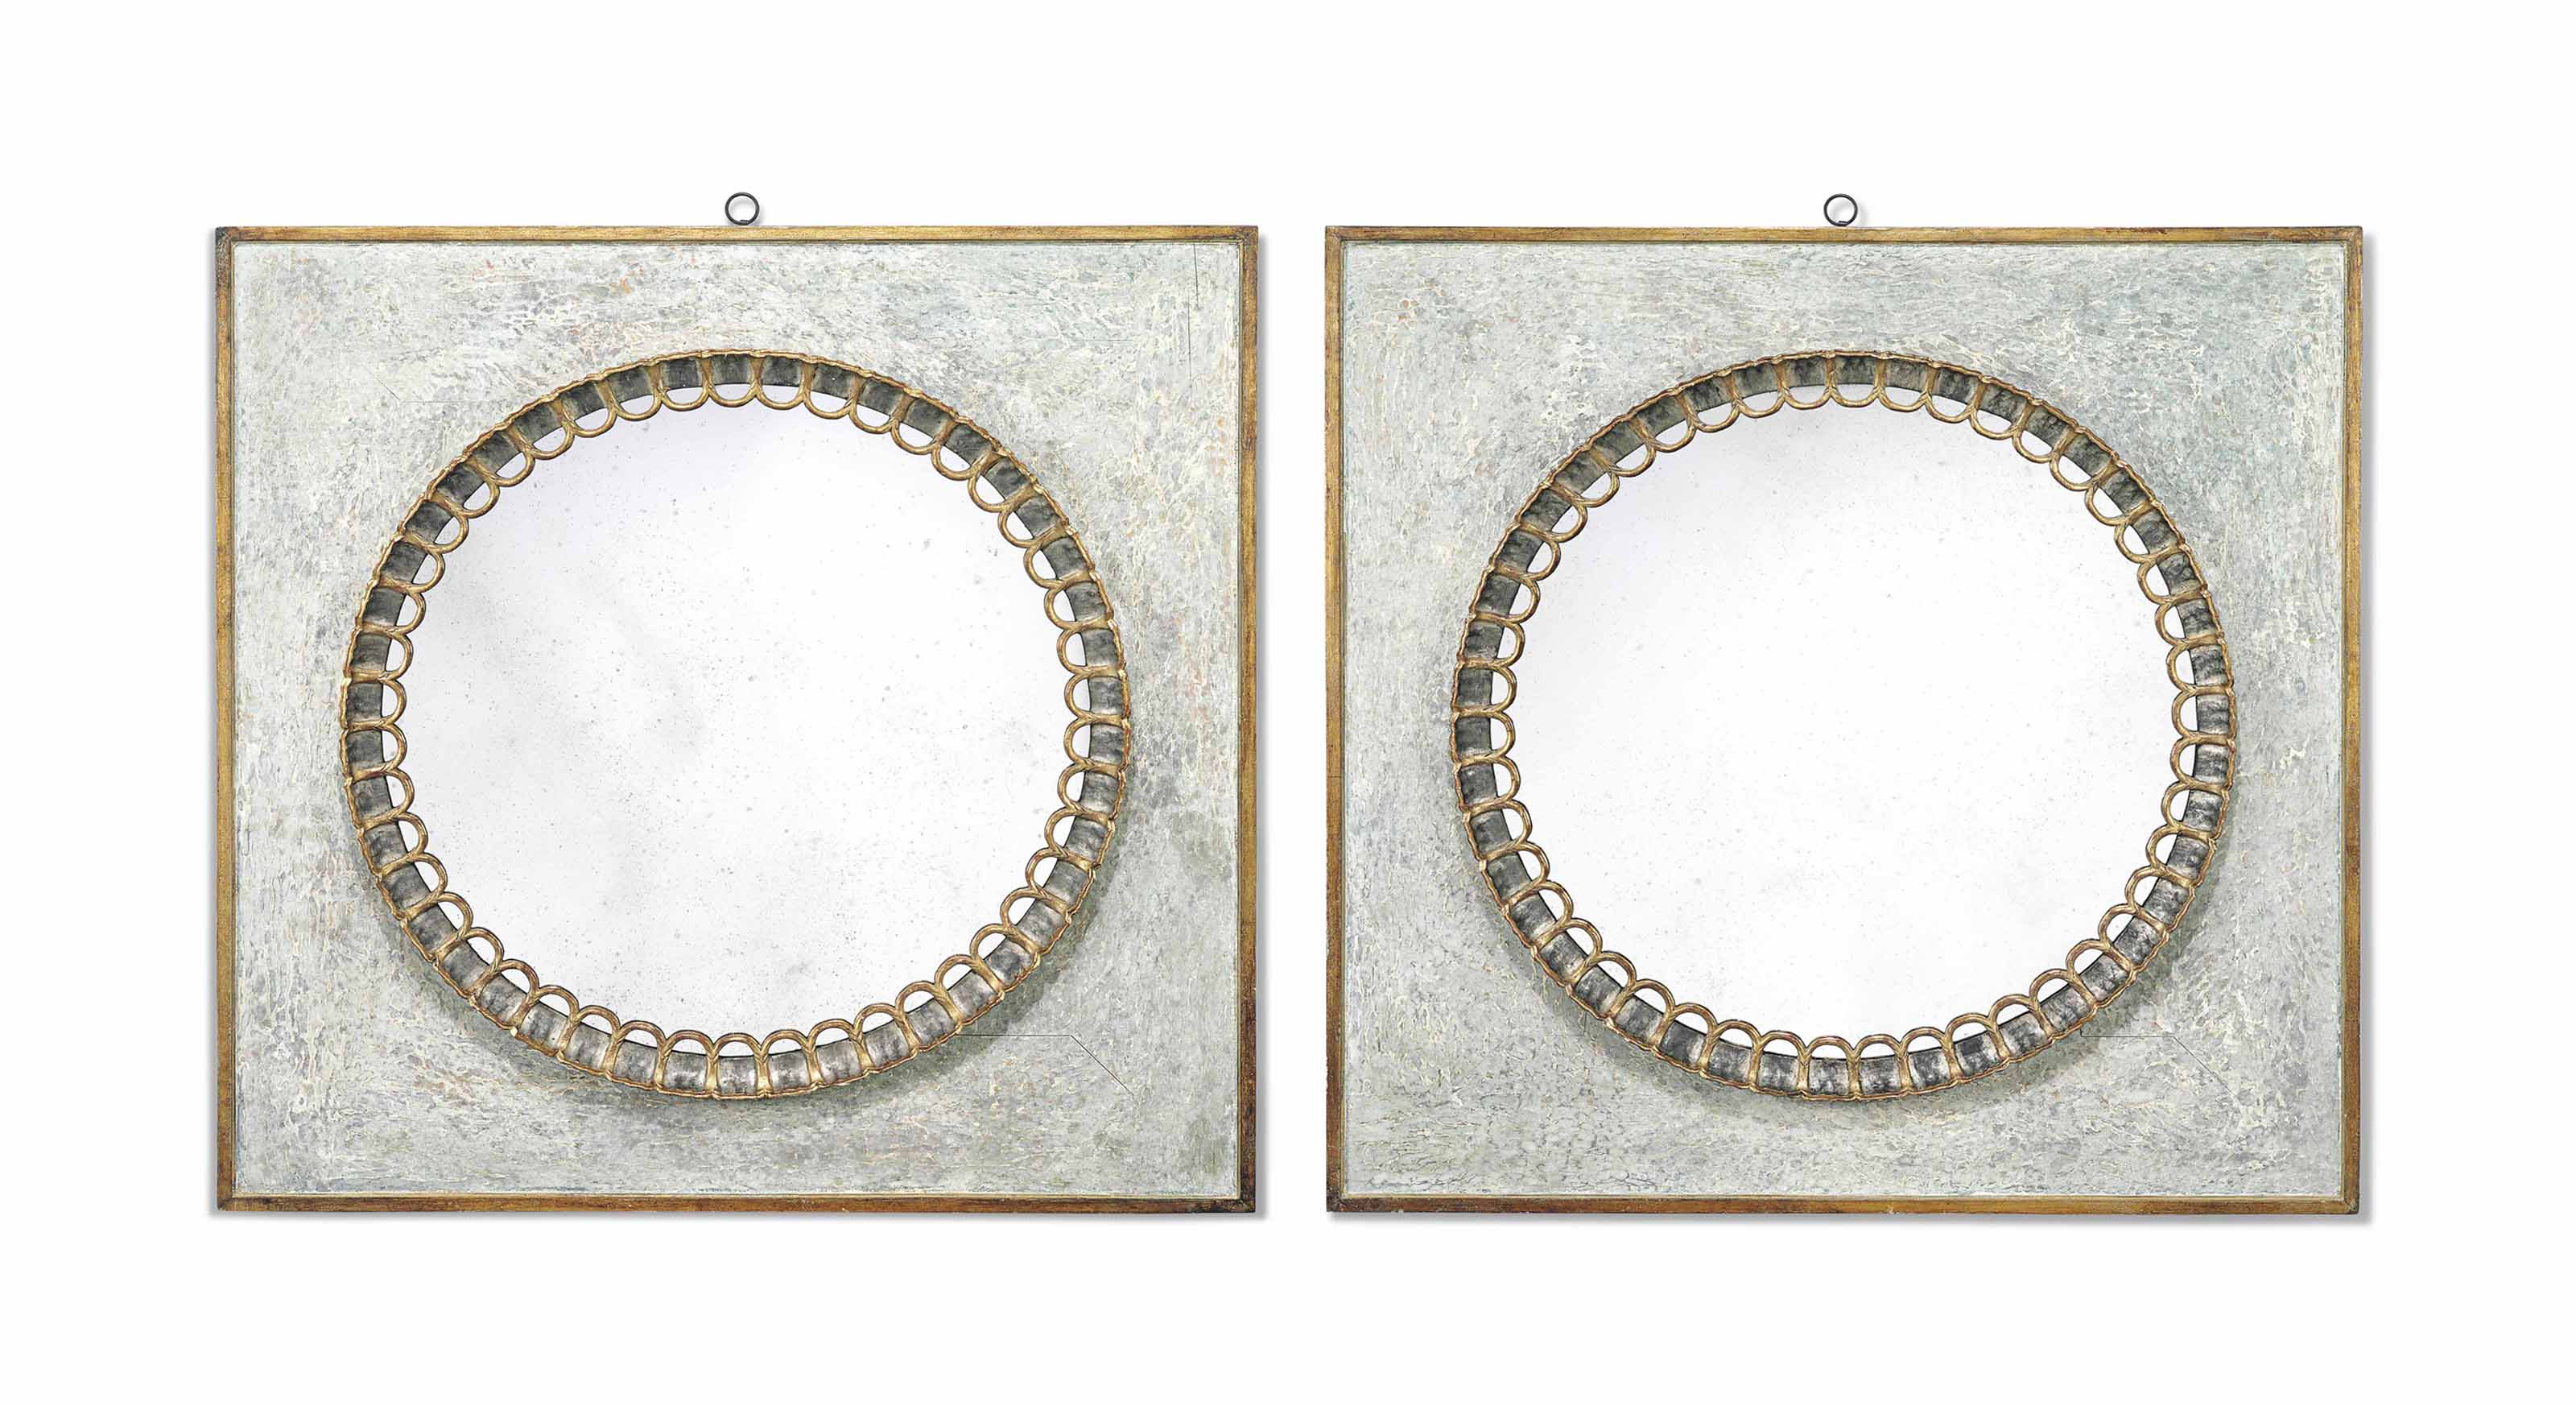 A LARGE PAIR OF GILTWOOD AND S